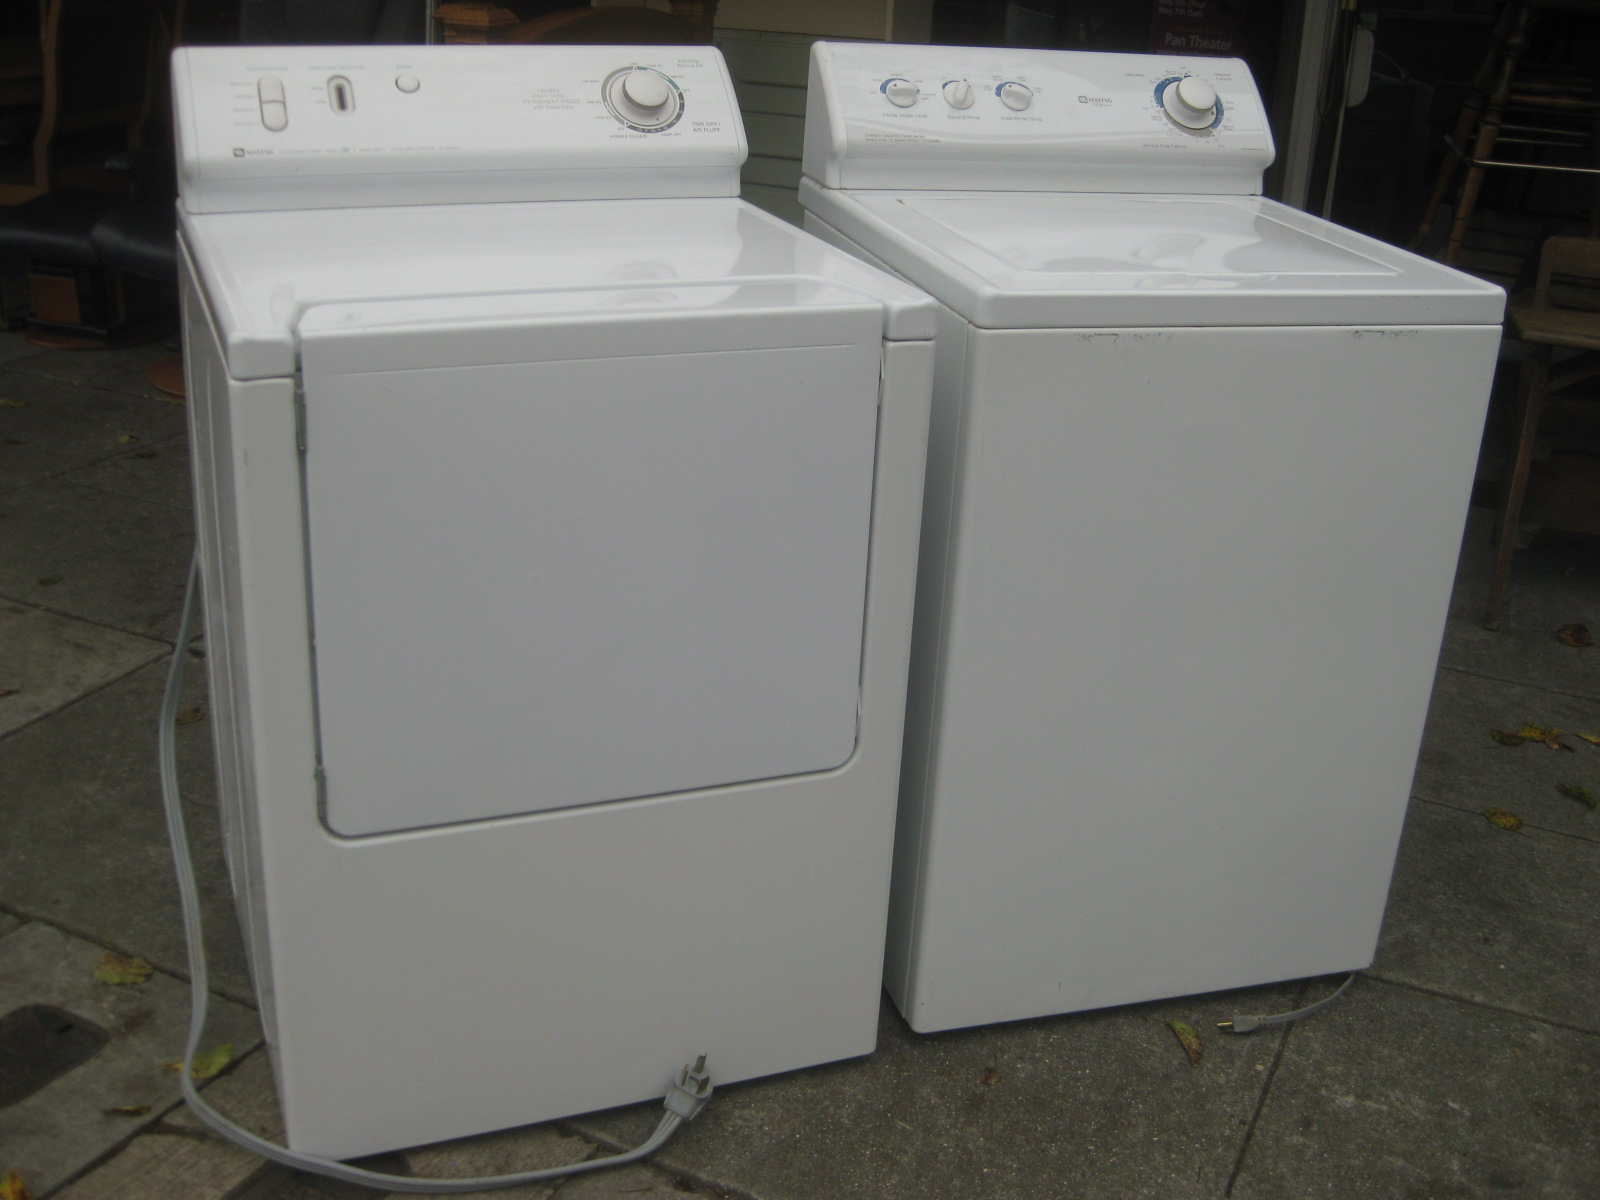 Maytag maytag washers and dryers maytag washers and dryers publicscrutiny Choice Image